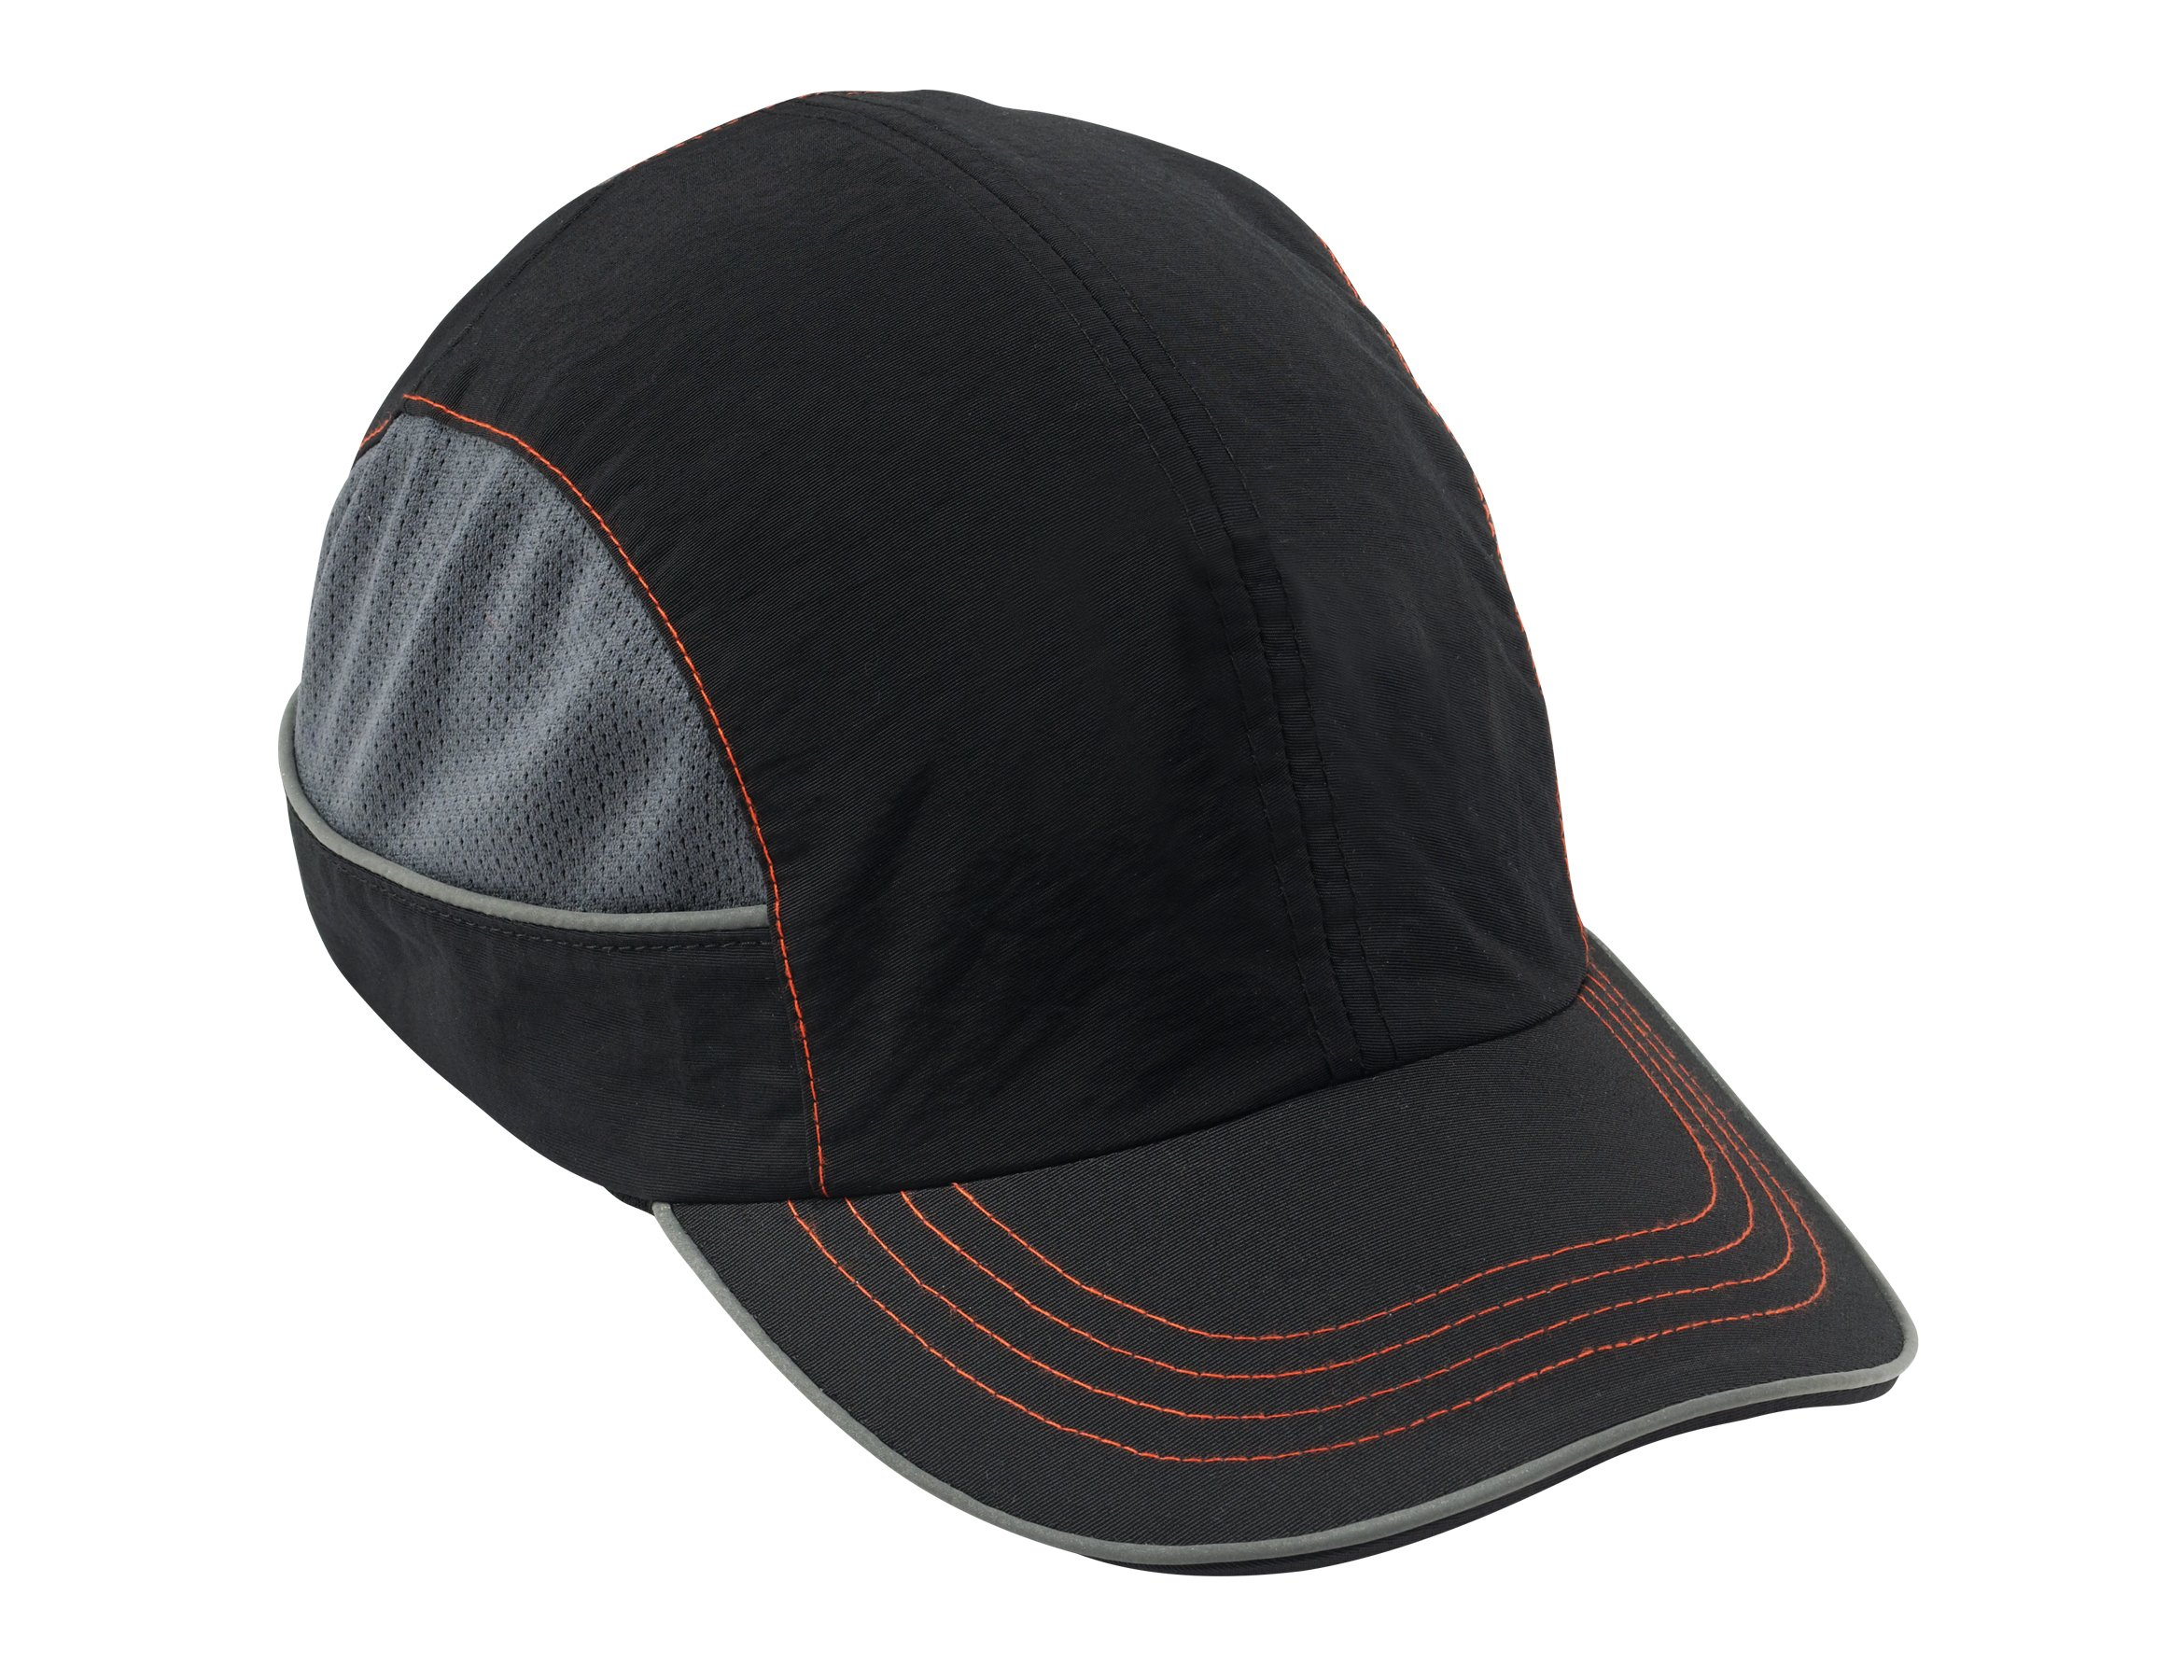 Safety Bump Cap, Baseball Hat Style, Breathable Head Protection, Long Brim, Skullerz 8950 by Ergodyne (Image #1)